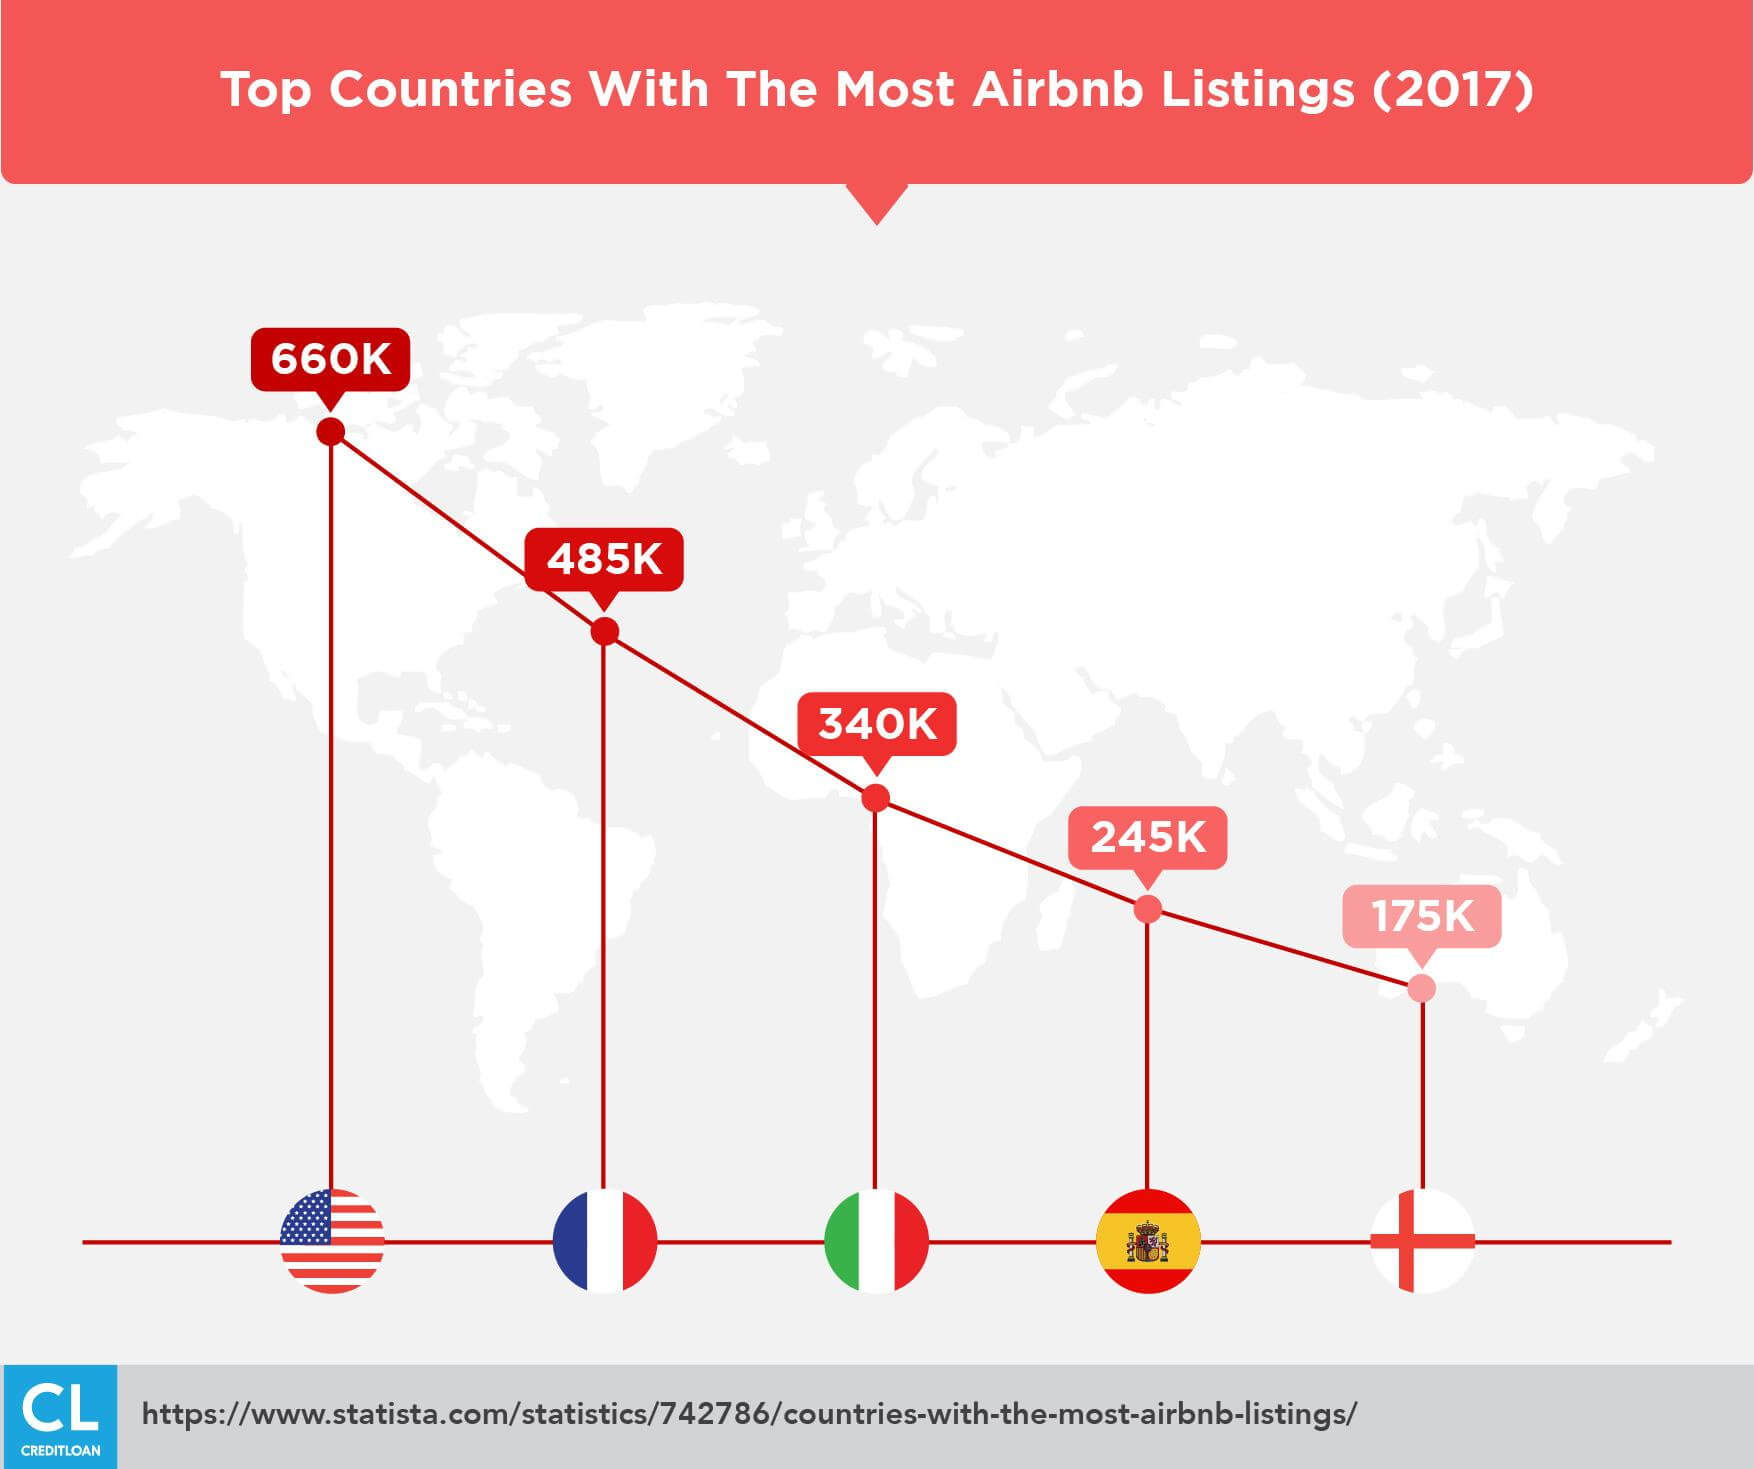 Top Countries With The Most Airbnb Listings 2017